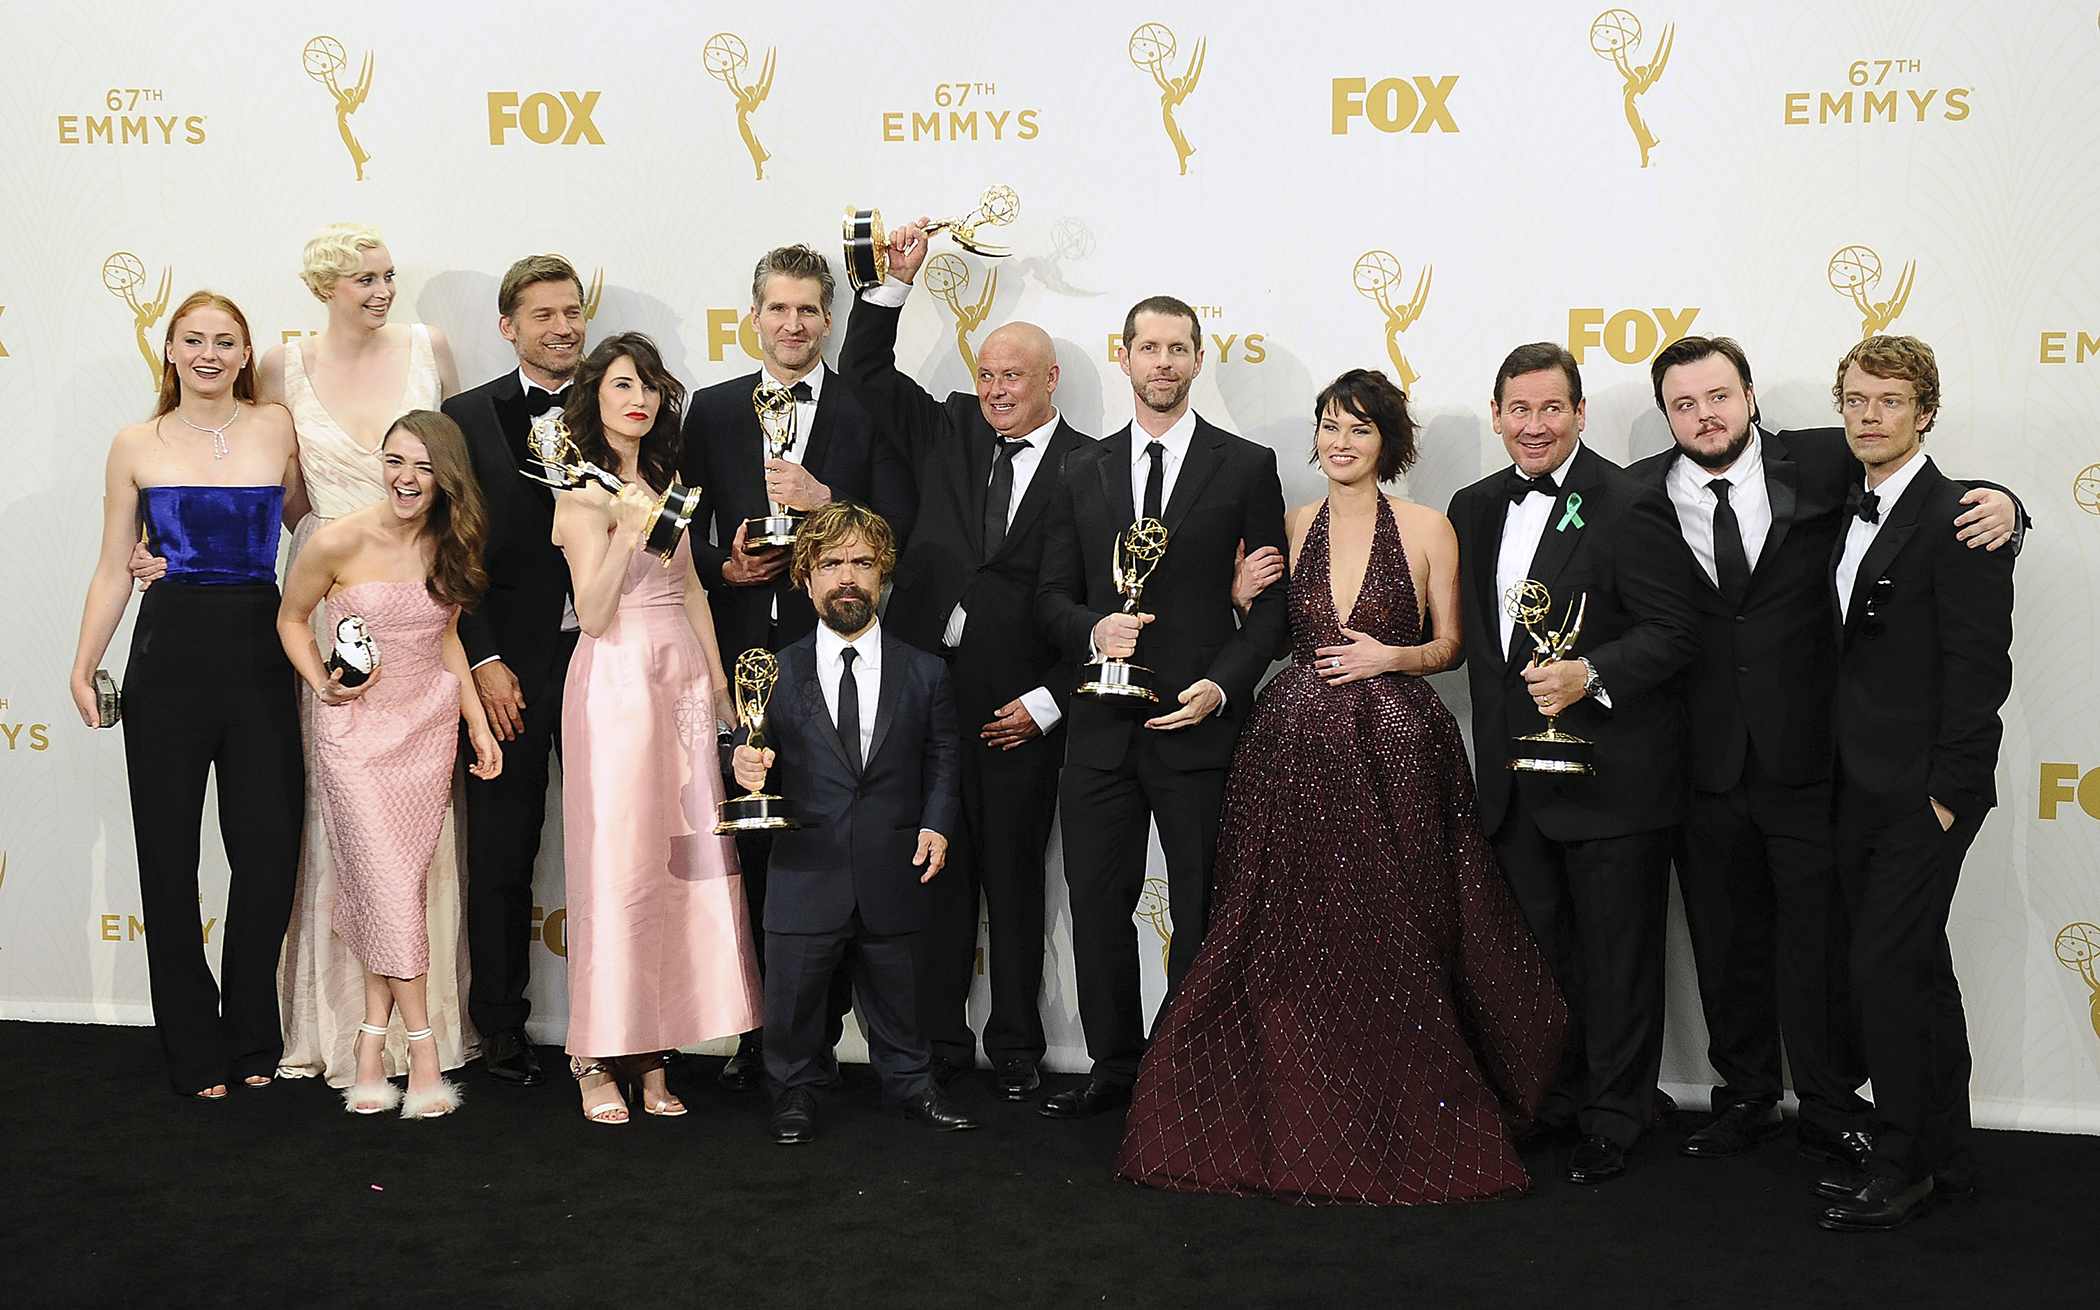 Actors Sophie Turner, Gwendoline Christie, Maisie Williams, Nikolaj Coster-Waldau, Carice van Houten, writer David Benioff, actor Peter Dinklage, Conleth Hill, writer D. B. Weiss, Lena Headey, director David Nutter and actors John Bradley-West and Alfie Allen, winners of Outstanding Drama Series for 'Game of Thrones' pose in the press room at the 67th annual Primetime Emmy Awards at Microsoft Theater on September 20, 2015 in Los Angeles, California.